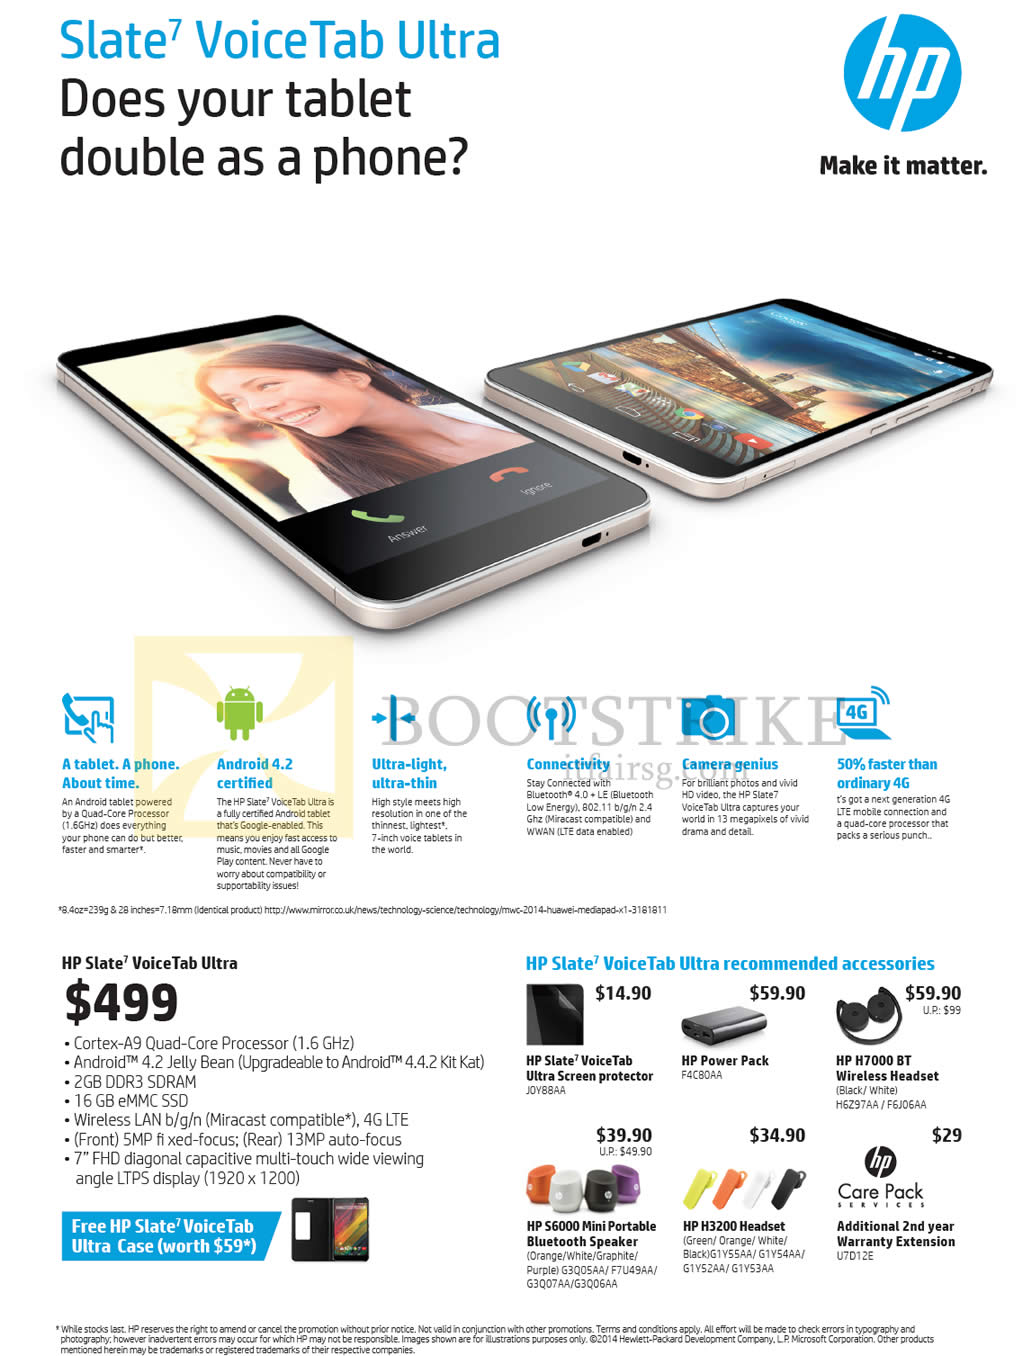 Hp slate 7 voicetab ultra sitex 2014 price list brochure for O tablet price list 2014